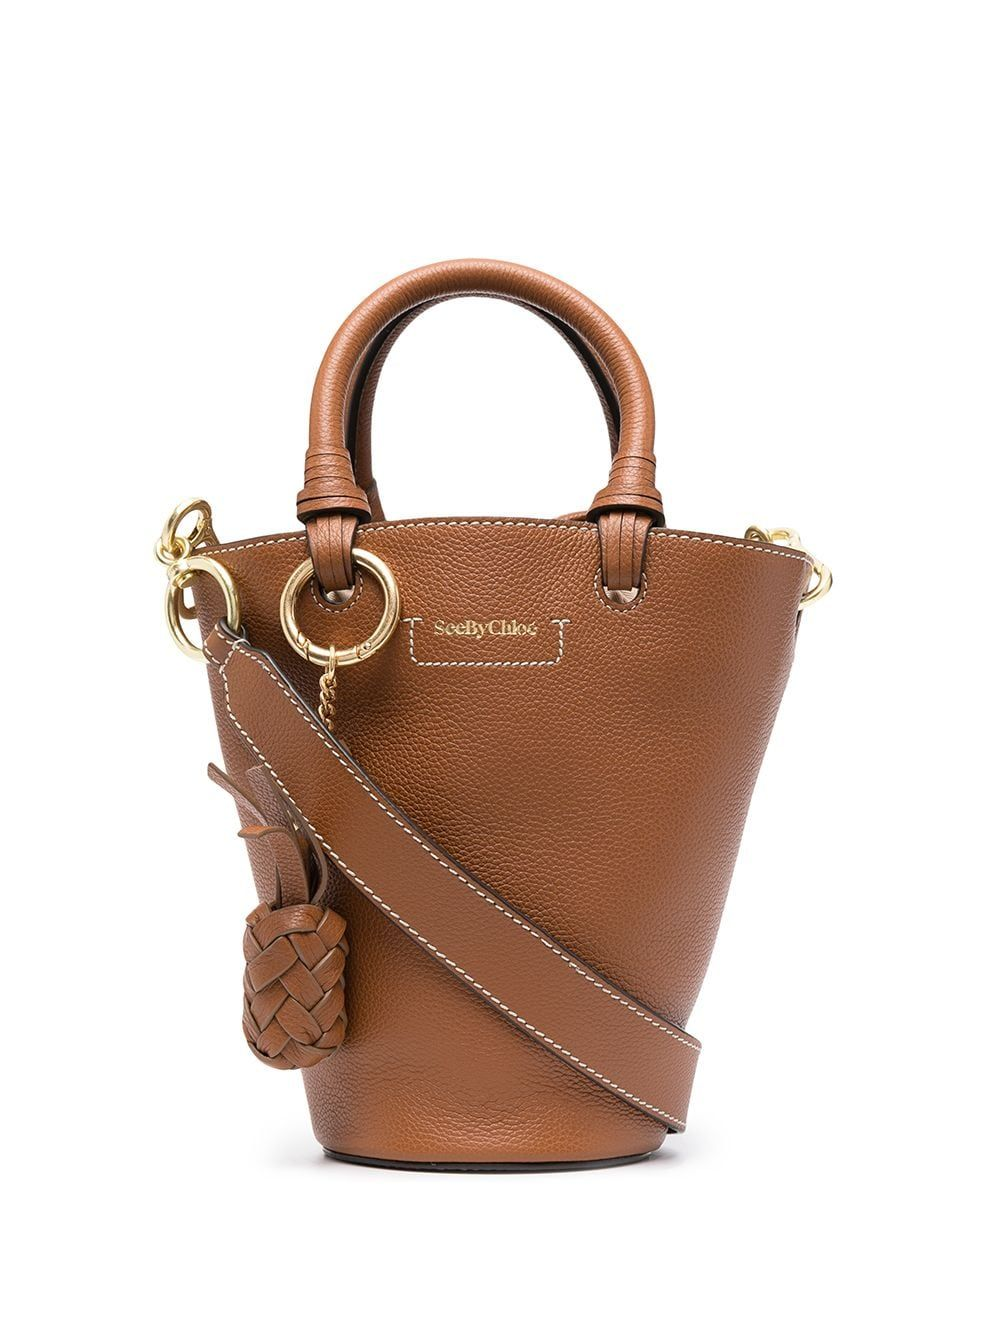 See By Chloé See By Chlo Women's Chs21ssb05912242 Brown Leather Handbag